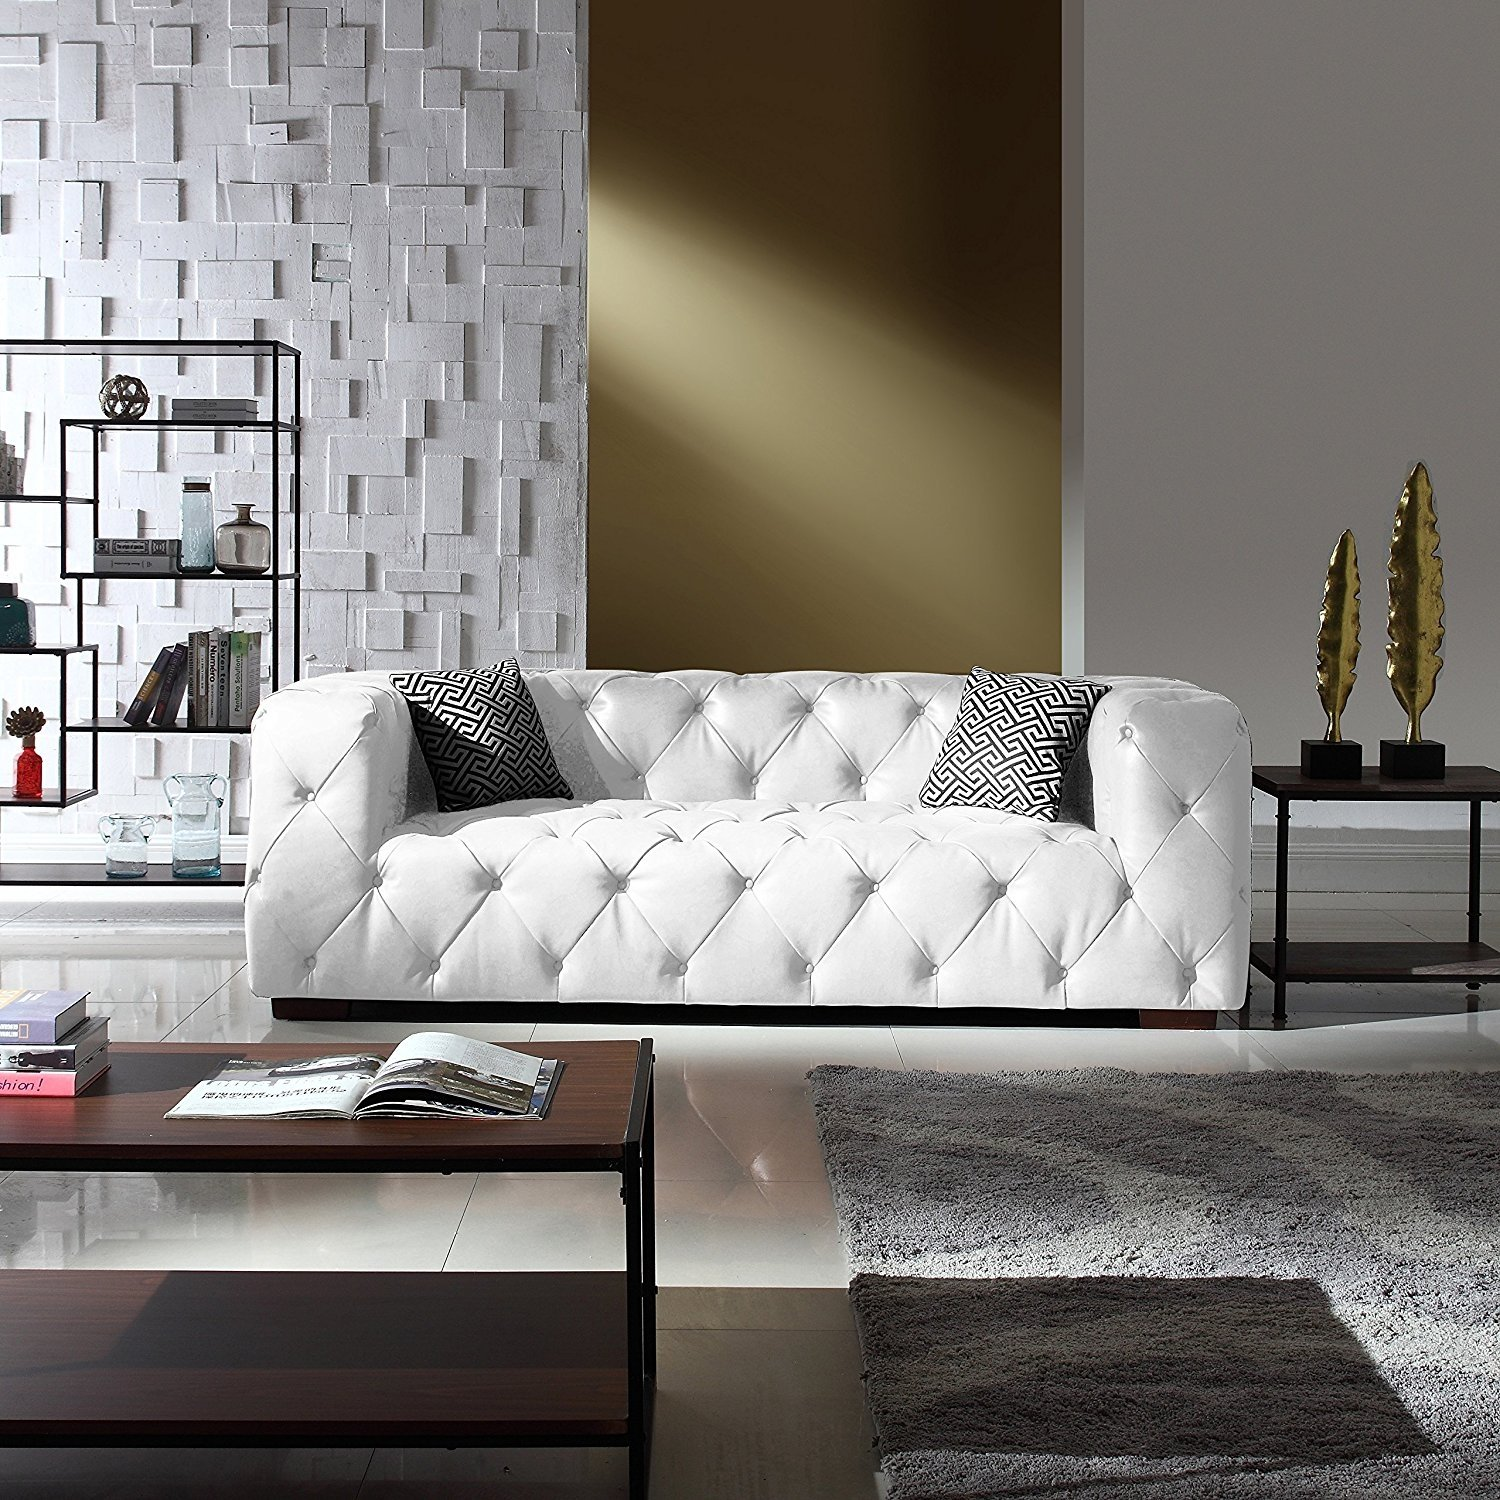 Large Tufted Real Leather Chesterfield Sofa Classic Living Room